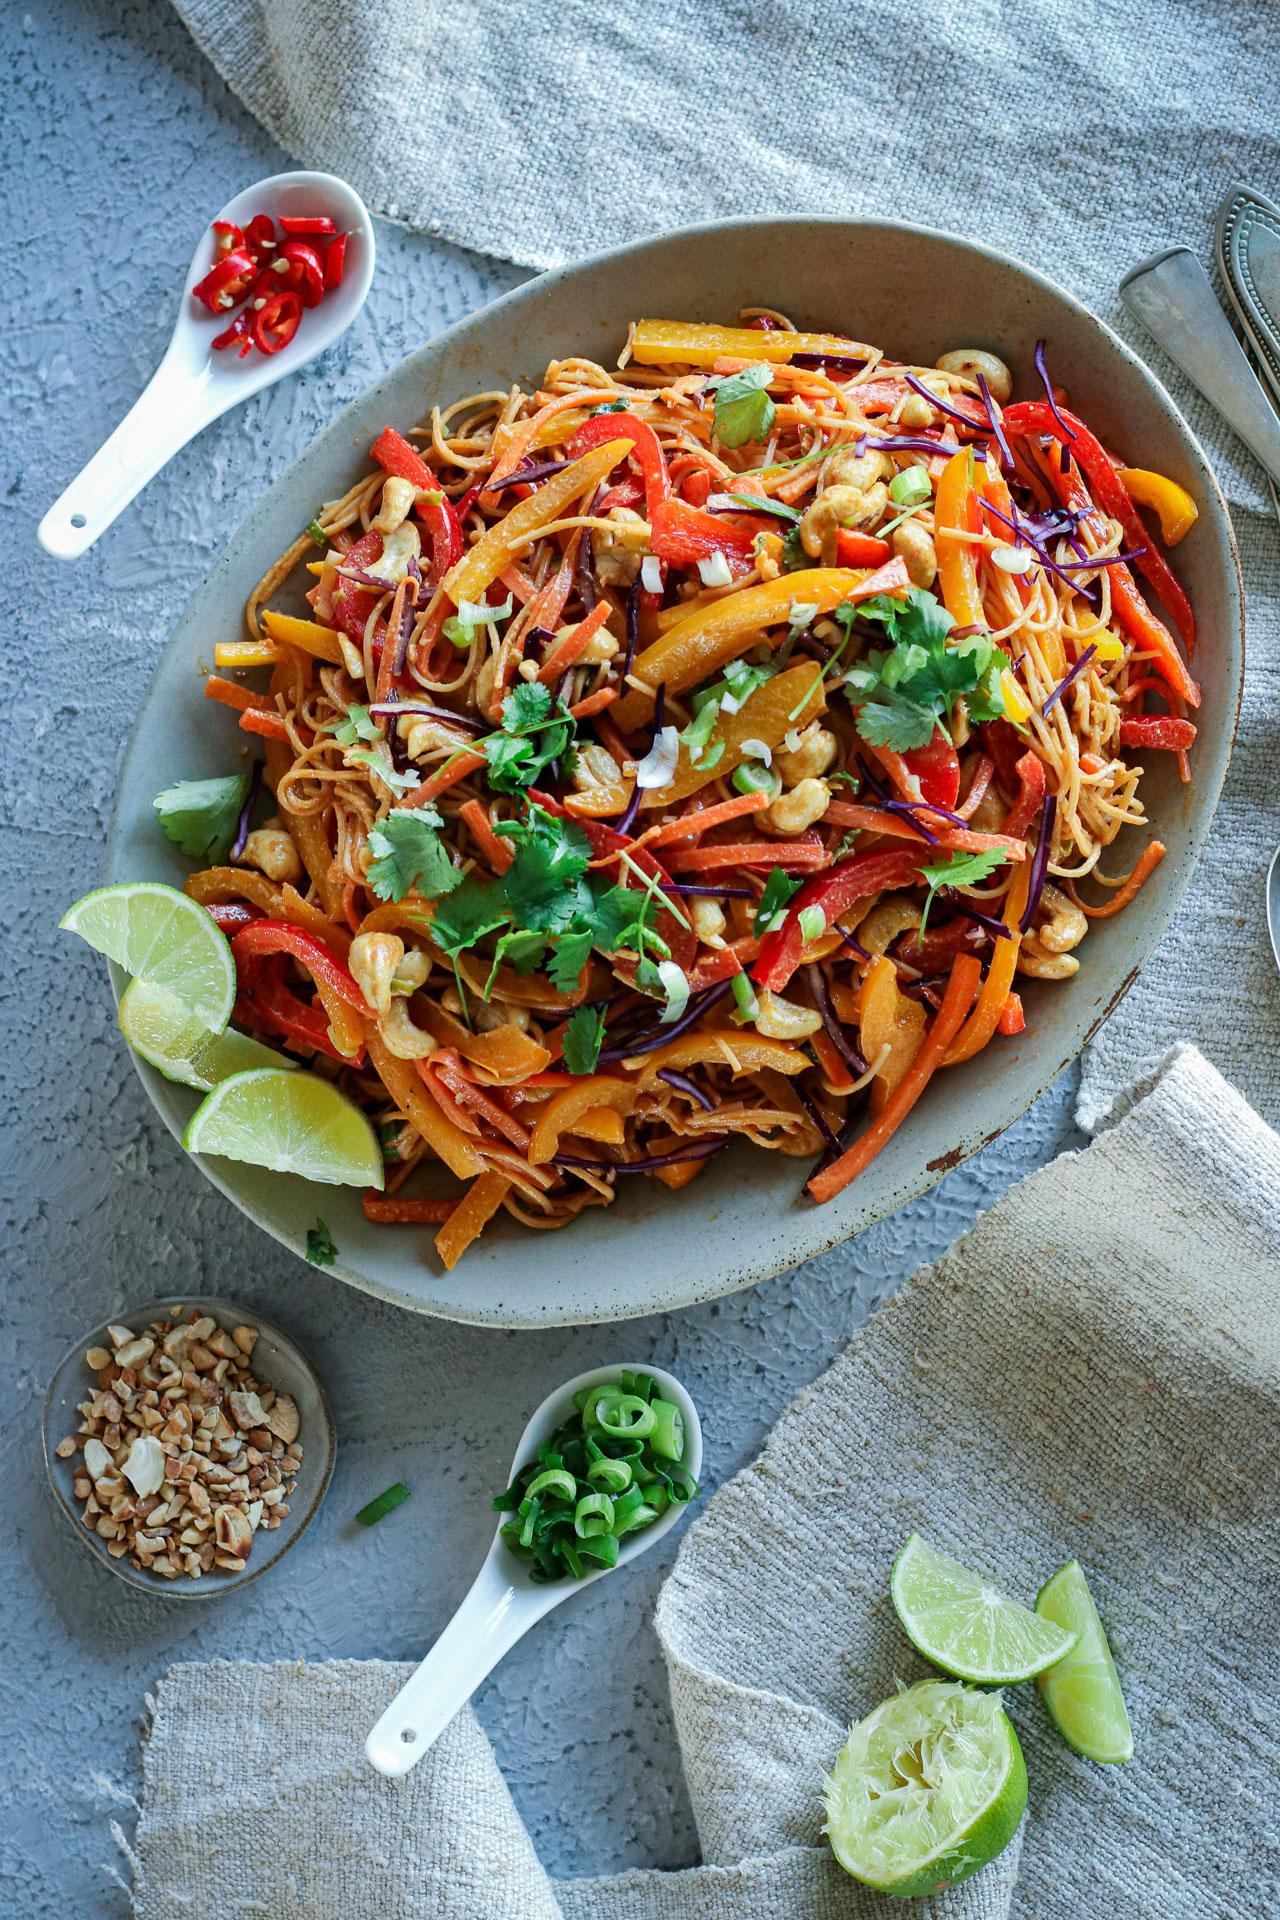 Main image of Vegetable Noodle Stir-Fry with Peanut Lime Sauce